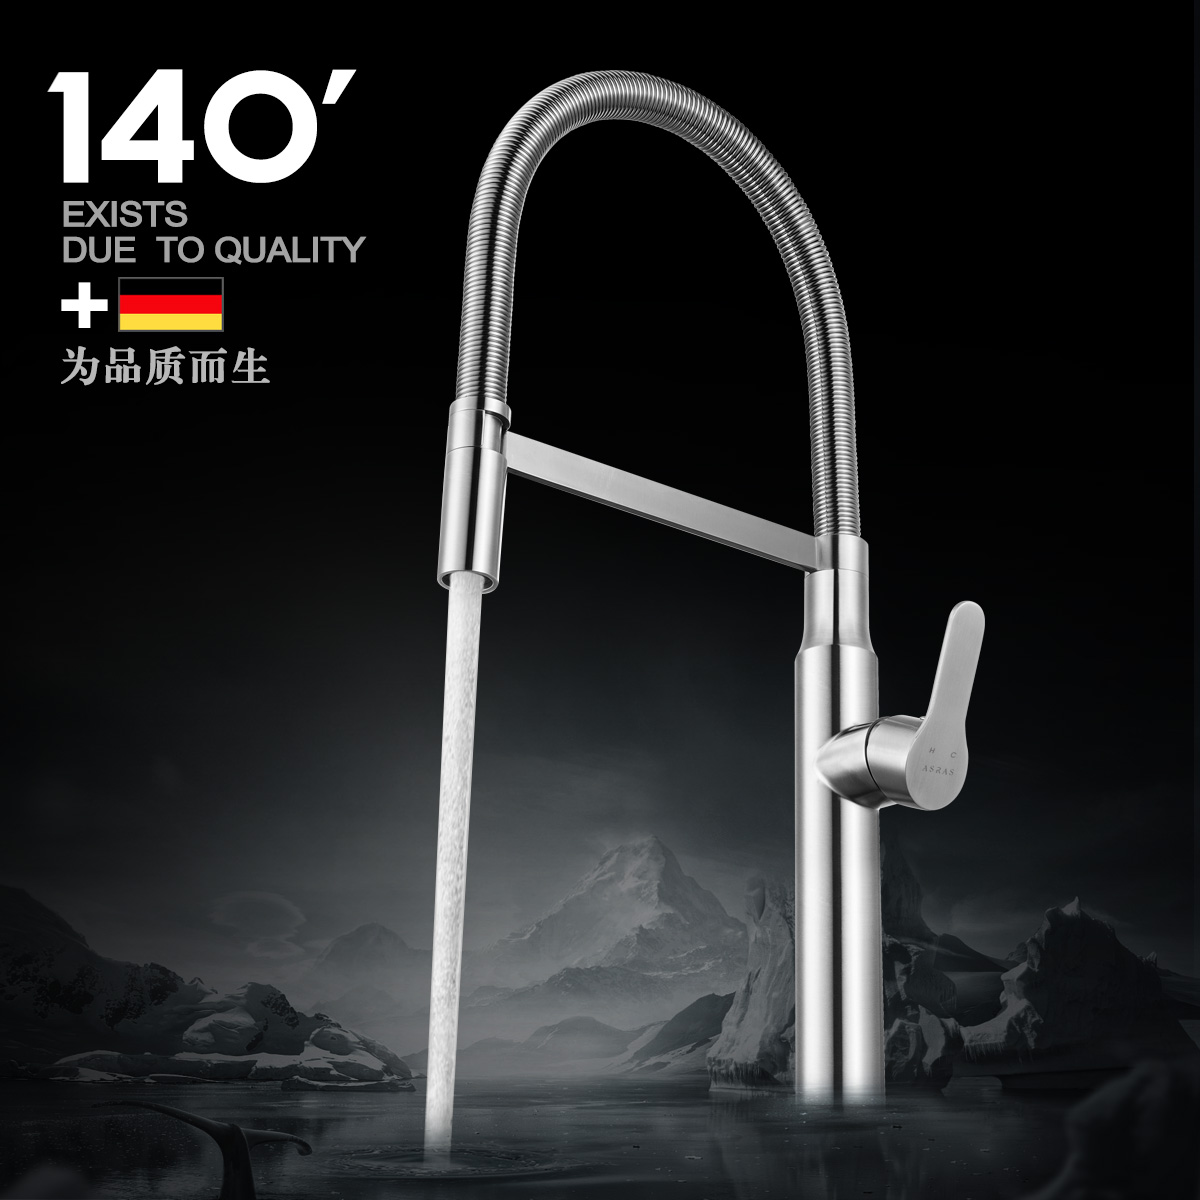 China Sink Mixer Taps, China Sink Mixer Taps Shopping Guide at ...